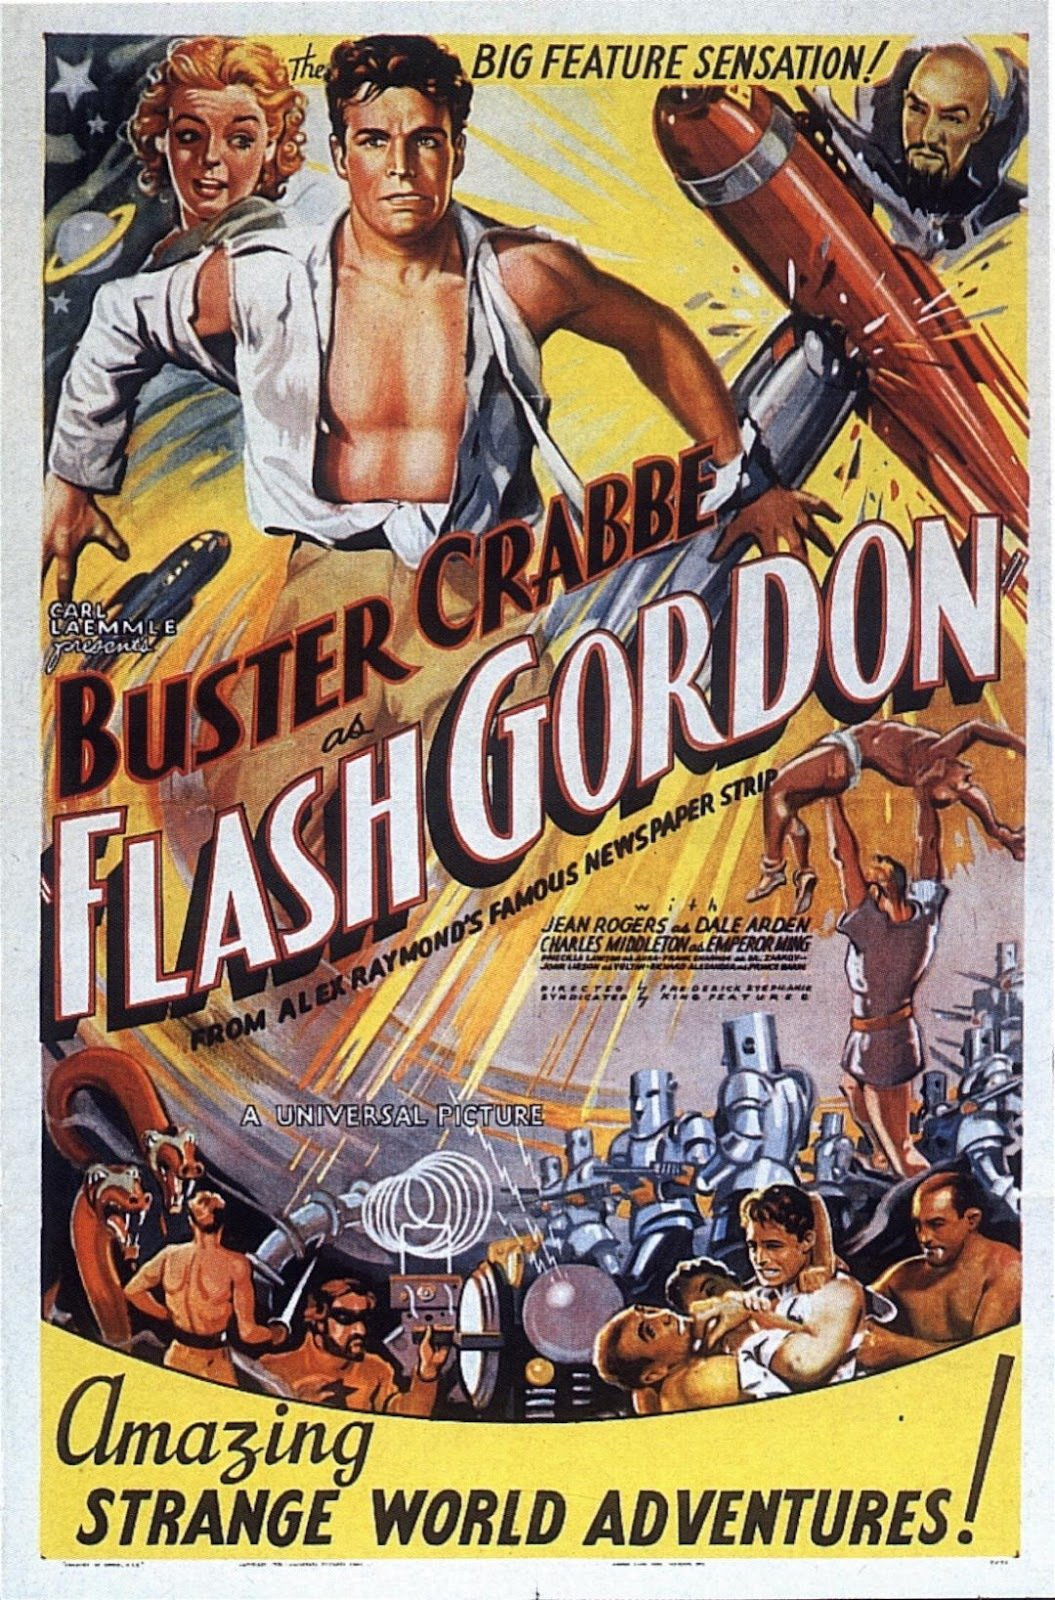 Flash Gordon (serial).jpg